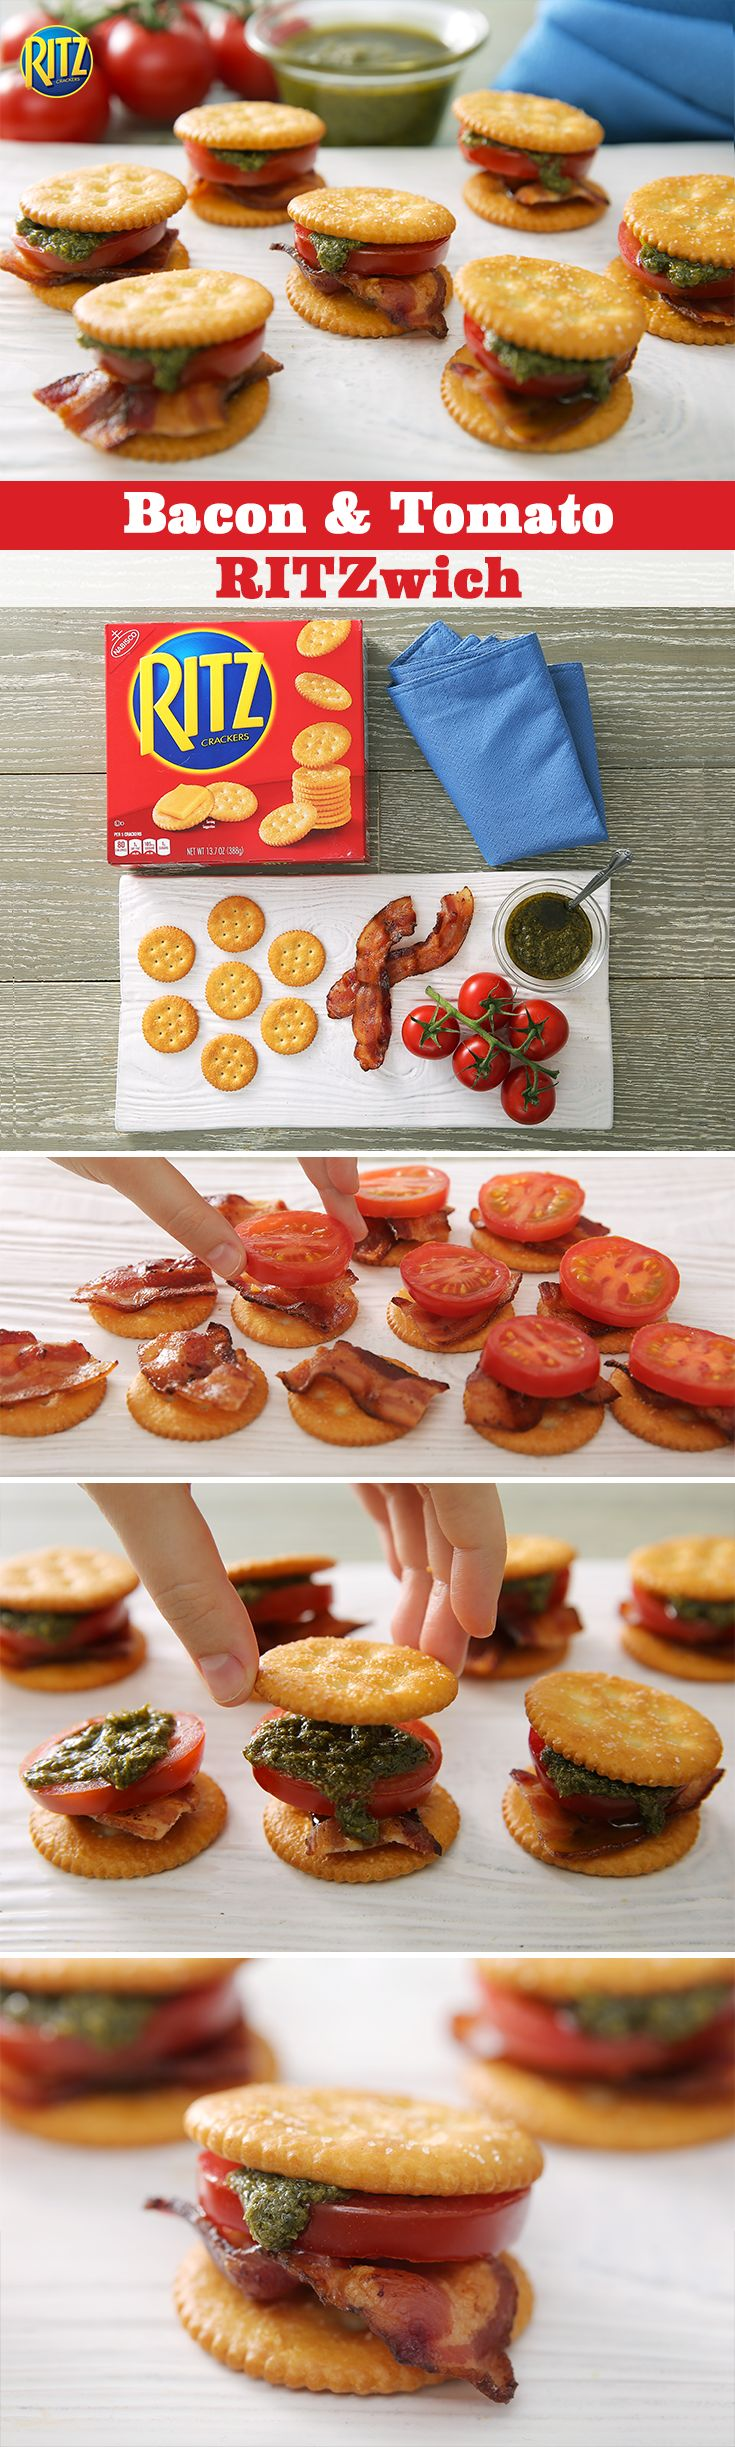 Sure, the kids in your neighborhood can be picky eaters. But one snack they'll never turn down is your famous Bacon & Tomato RITZwich. Stack RITZ Crackers with a bit of bacon, sliced tomatoes and pesto and top them off with one last RITZ Cracker. Happy tummies mean happy kiddies.